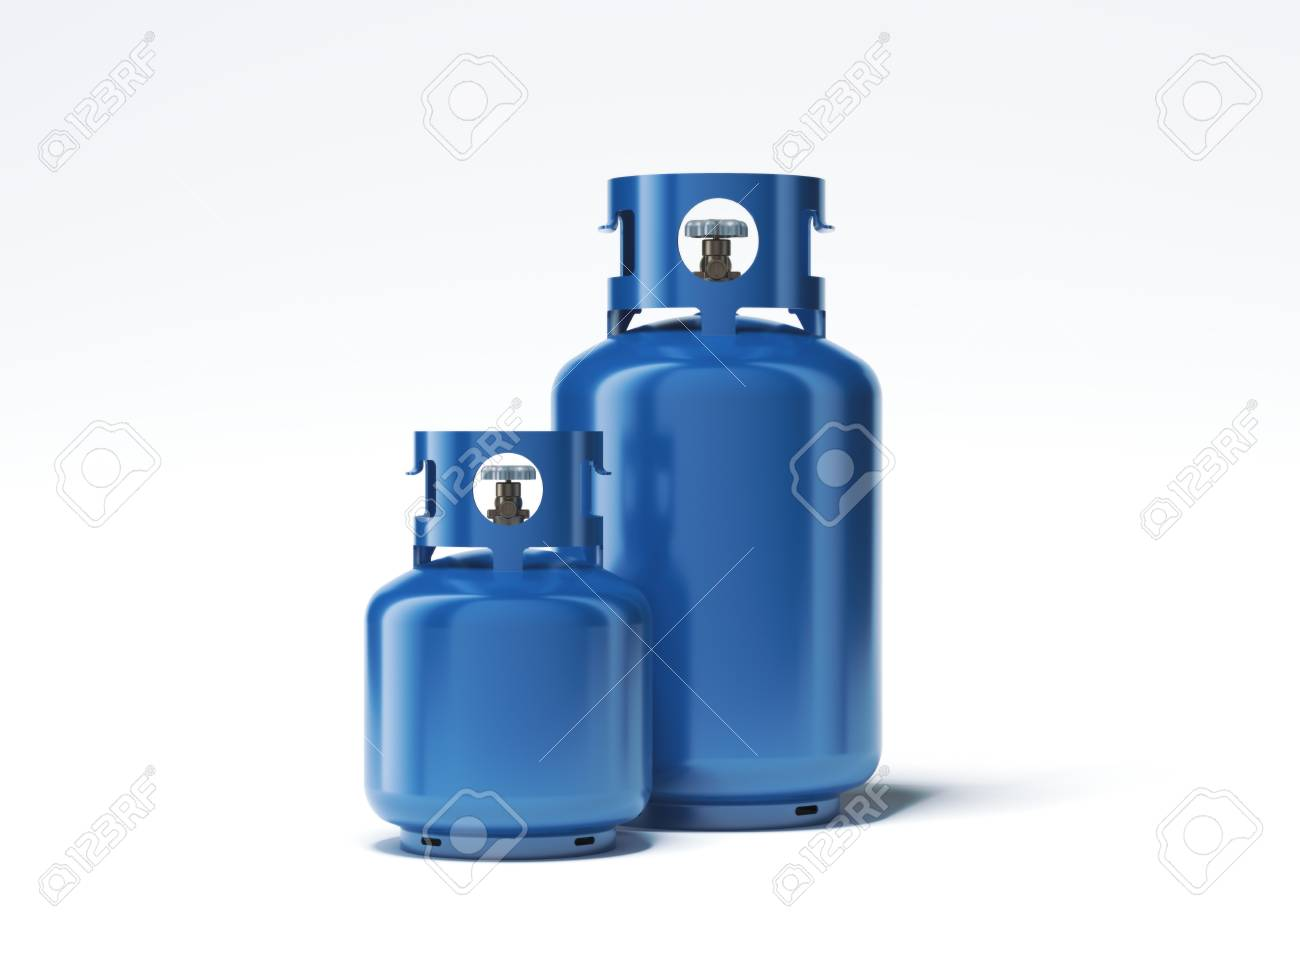 Two types of gas bottles isolated on white background. 3d rendering - 77885735